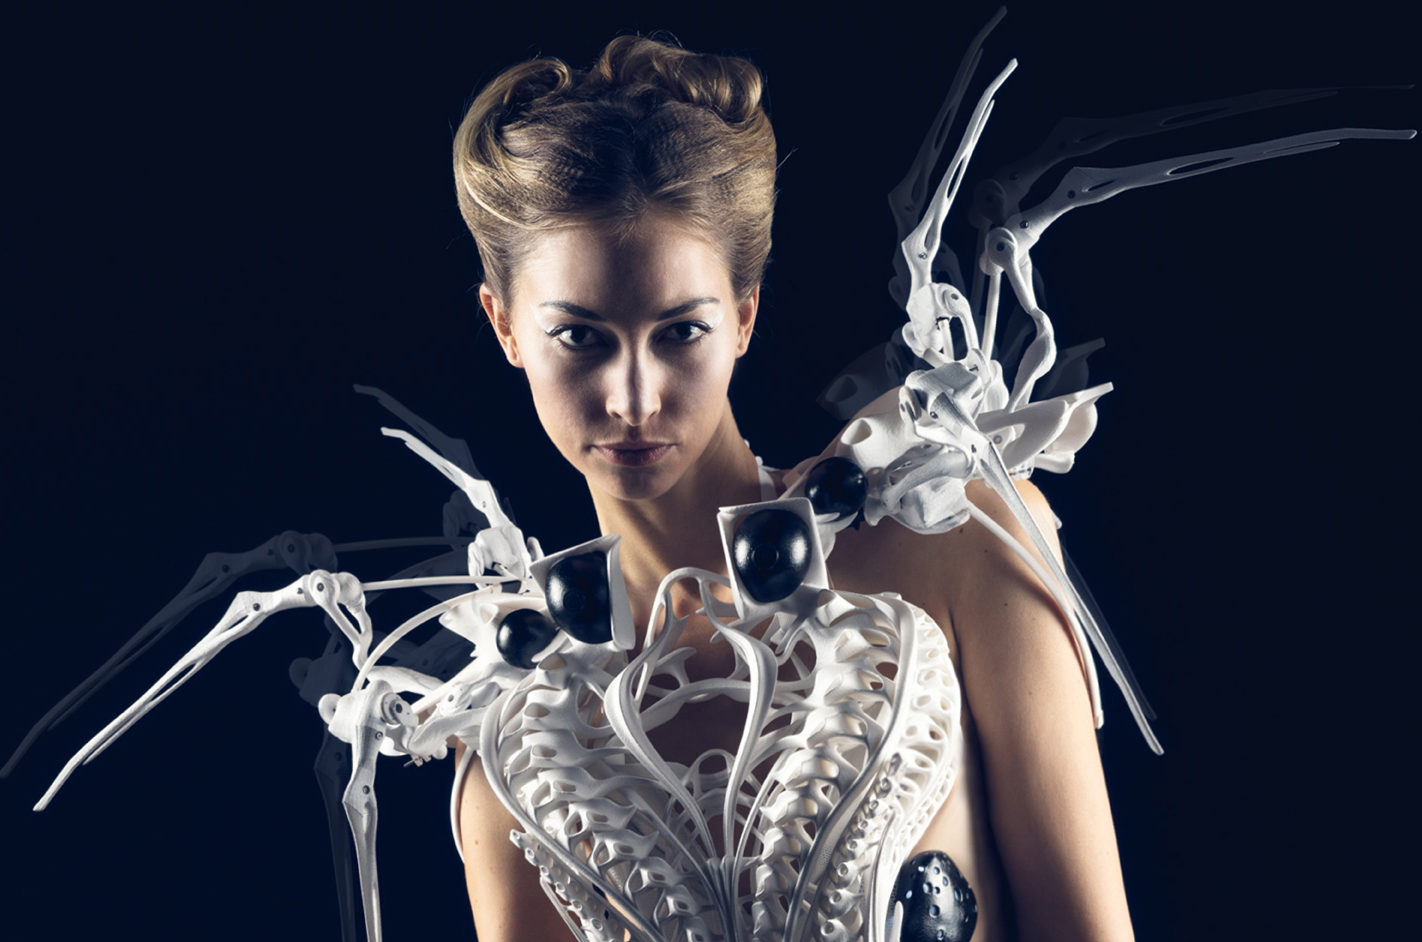 Anouk Wipprecht_ Spider Dress 2.0_ 2015 3D-printed with Intel Edison Microcontrollers.